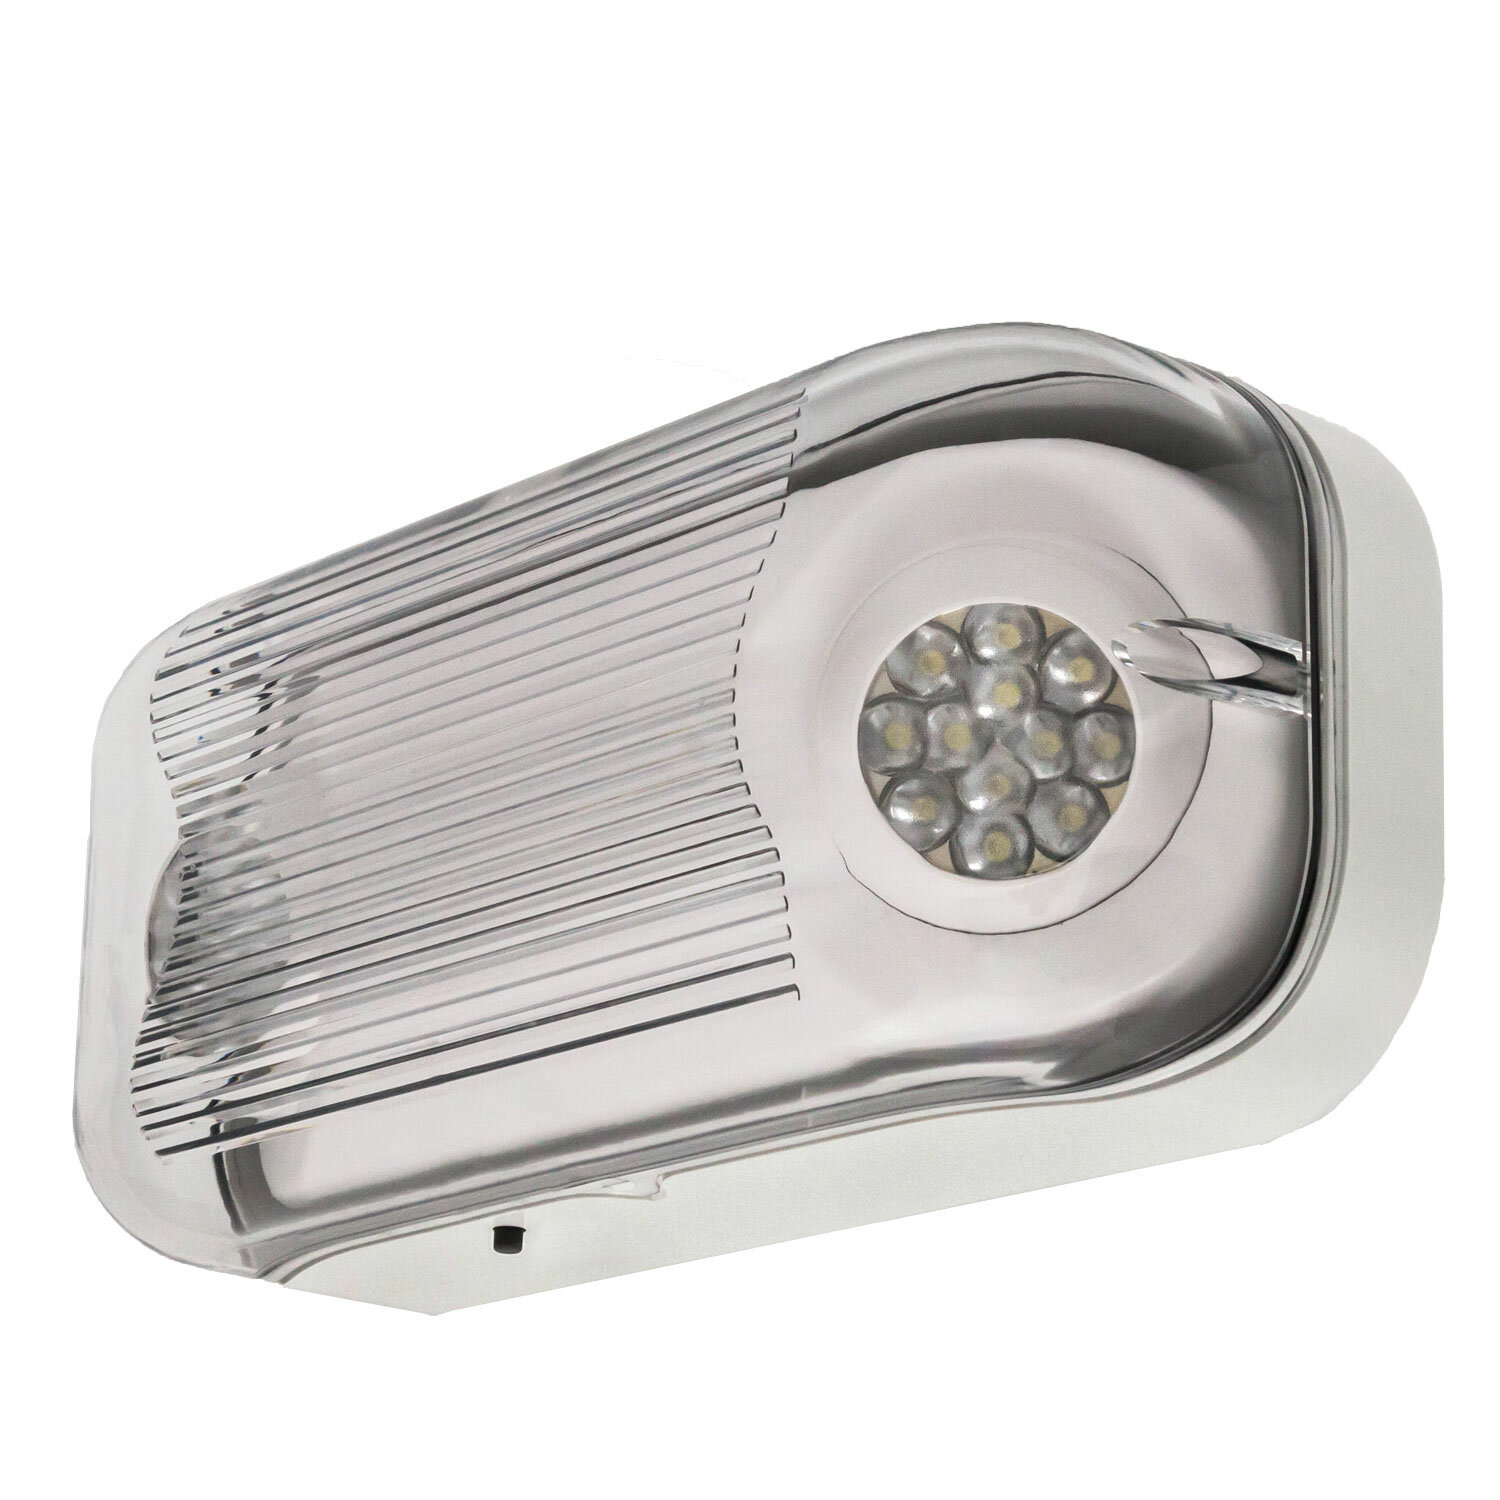 Light Fixture Industries Rated Thermoplastic Led Emergency Light Wayfair